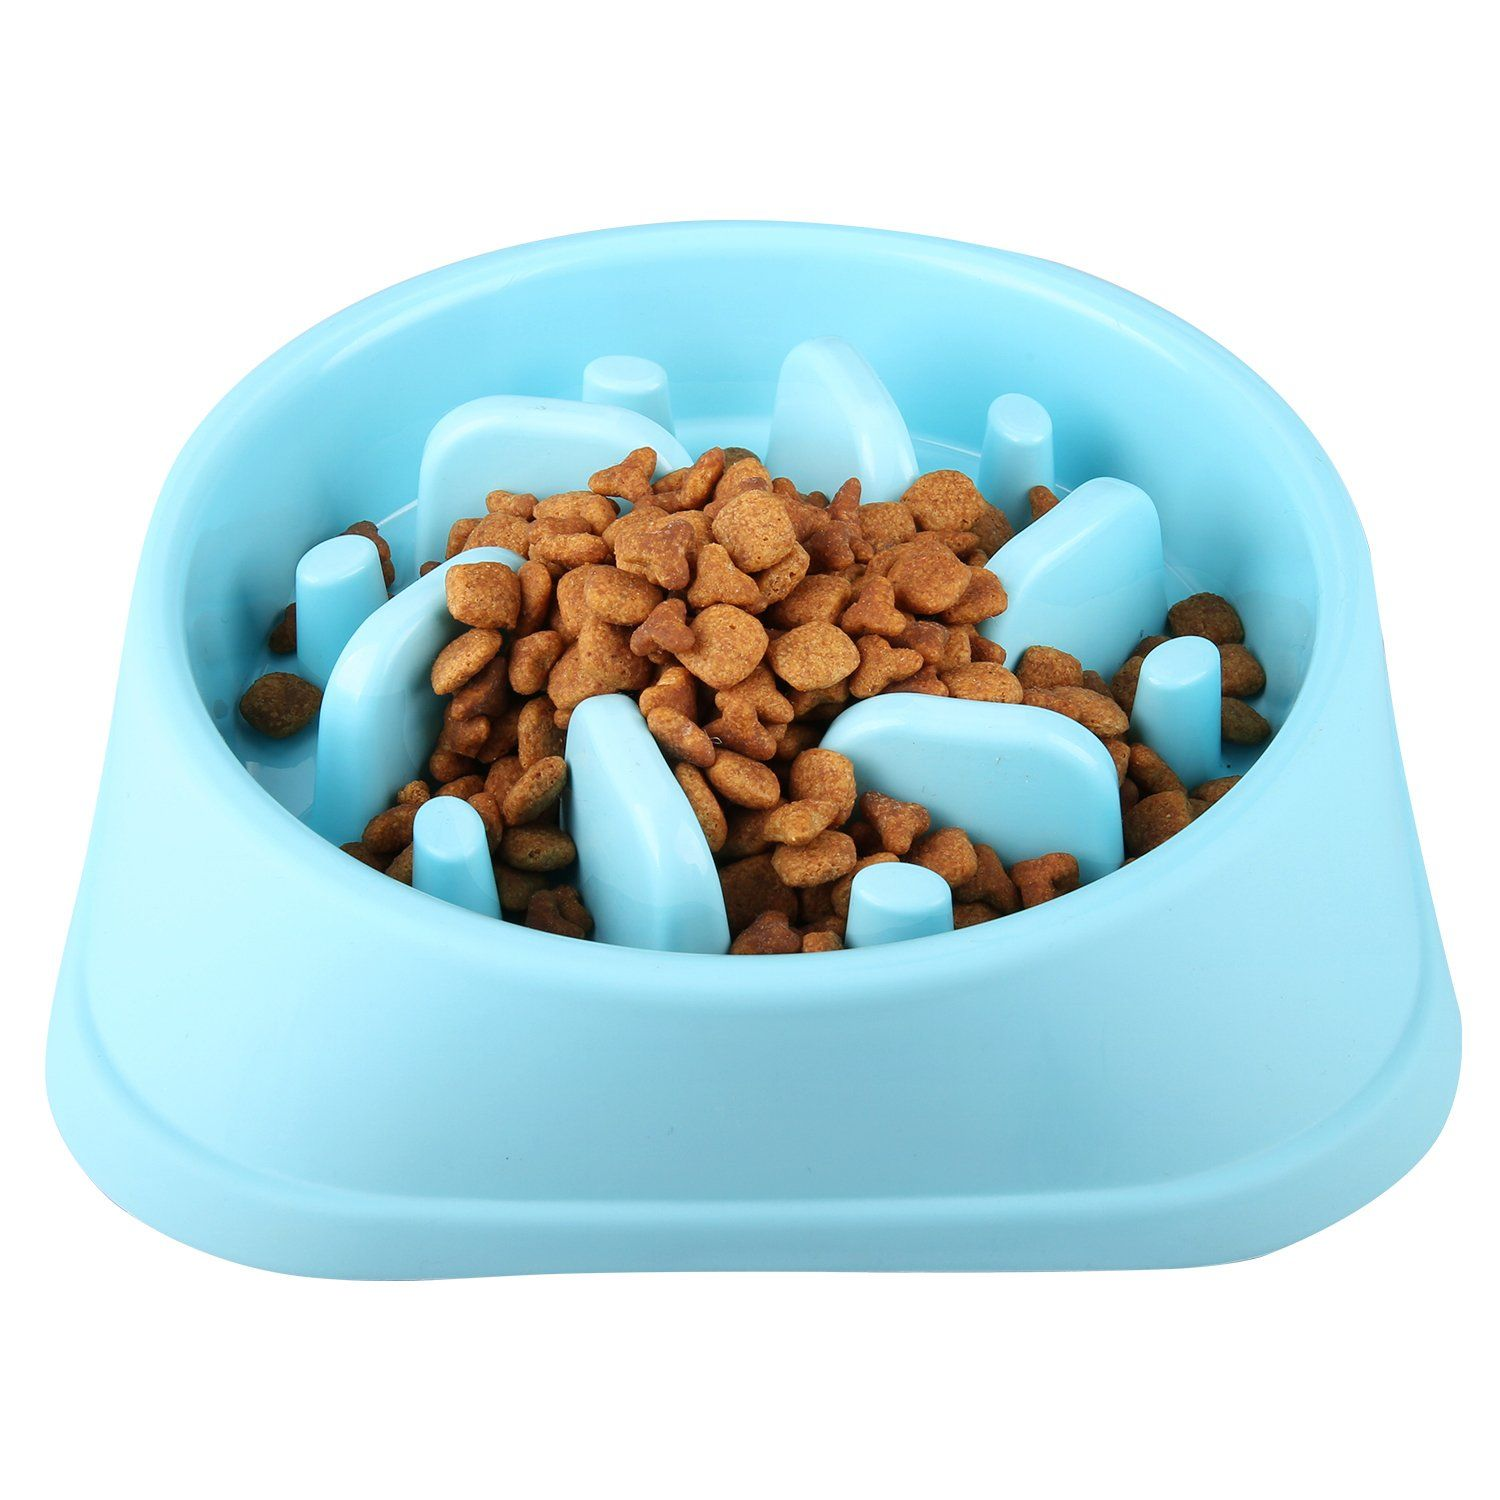 Wangstar Pet Slow Feeder Bowl Bloat Stop Dog Puzzle Bowl Maze